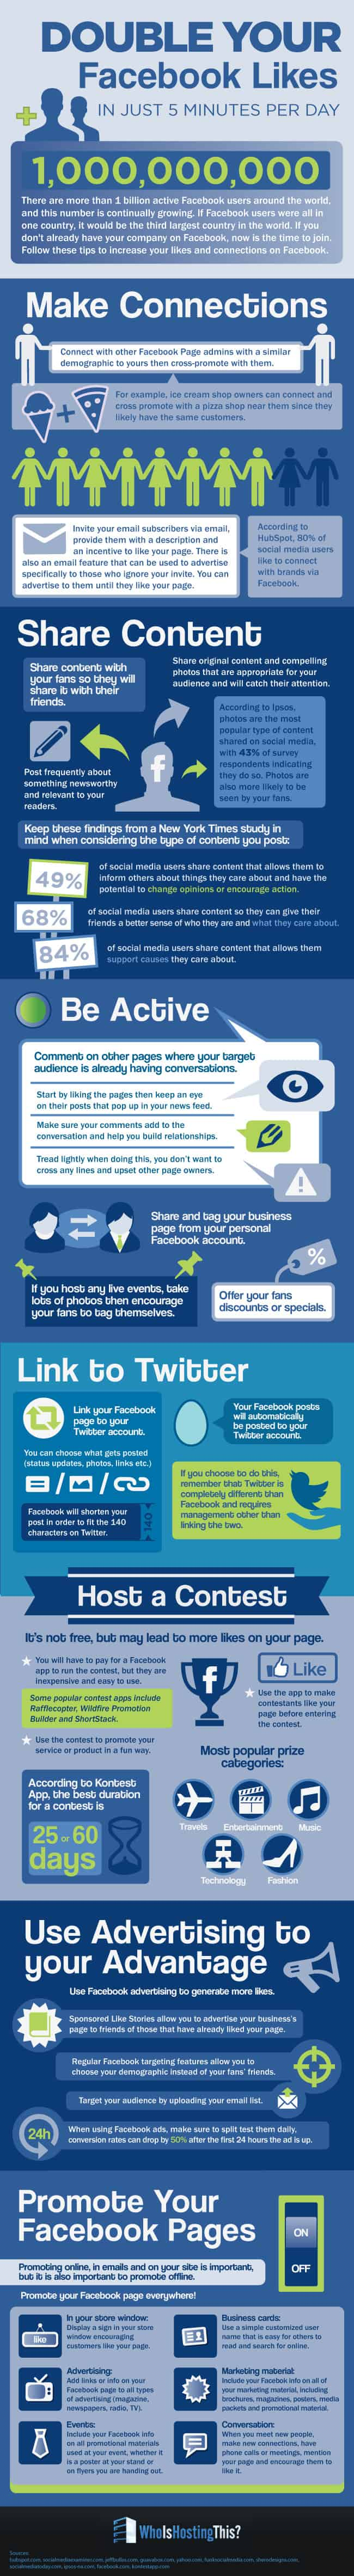 Tips To Get More Likes On Facebook